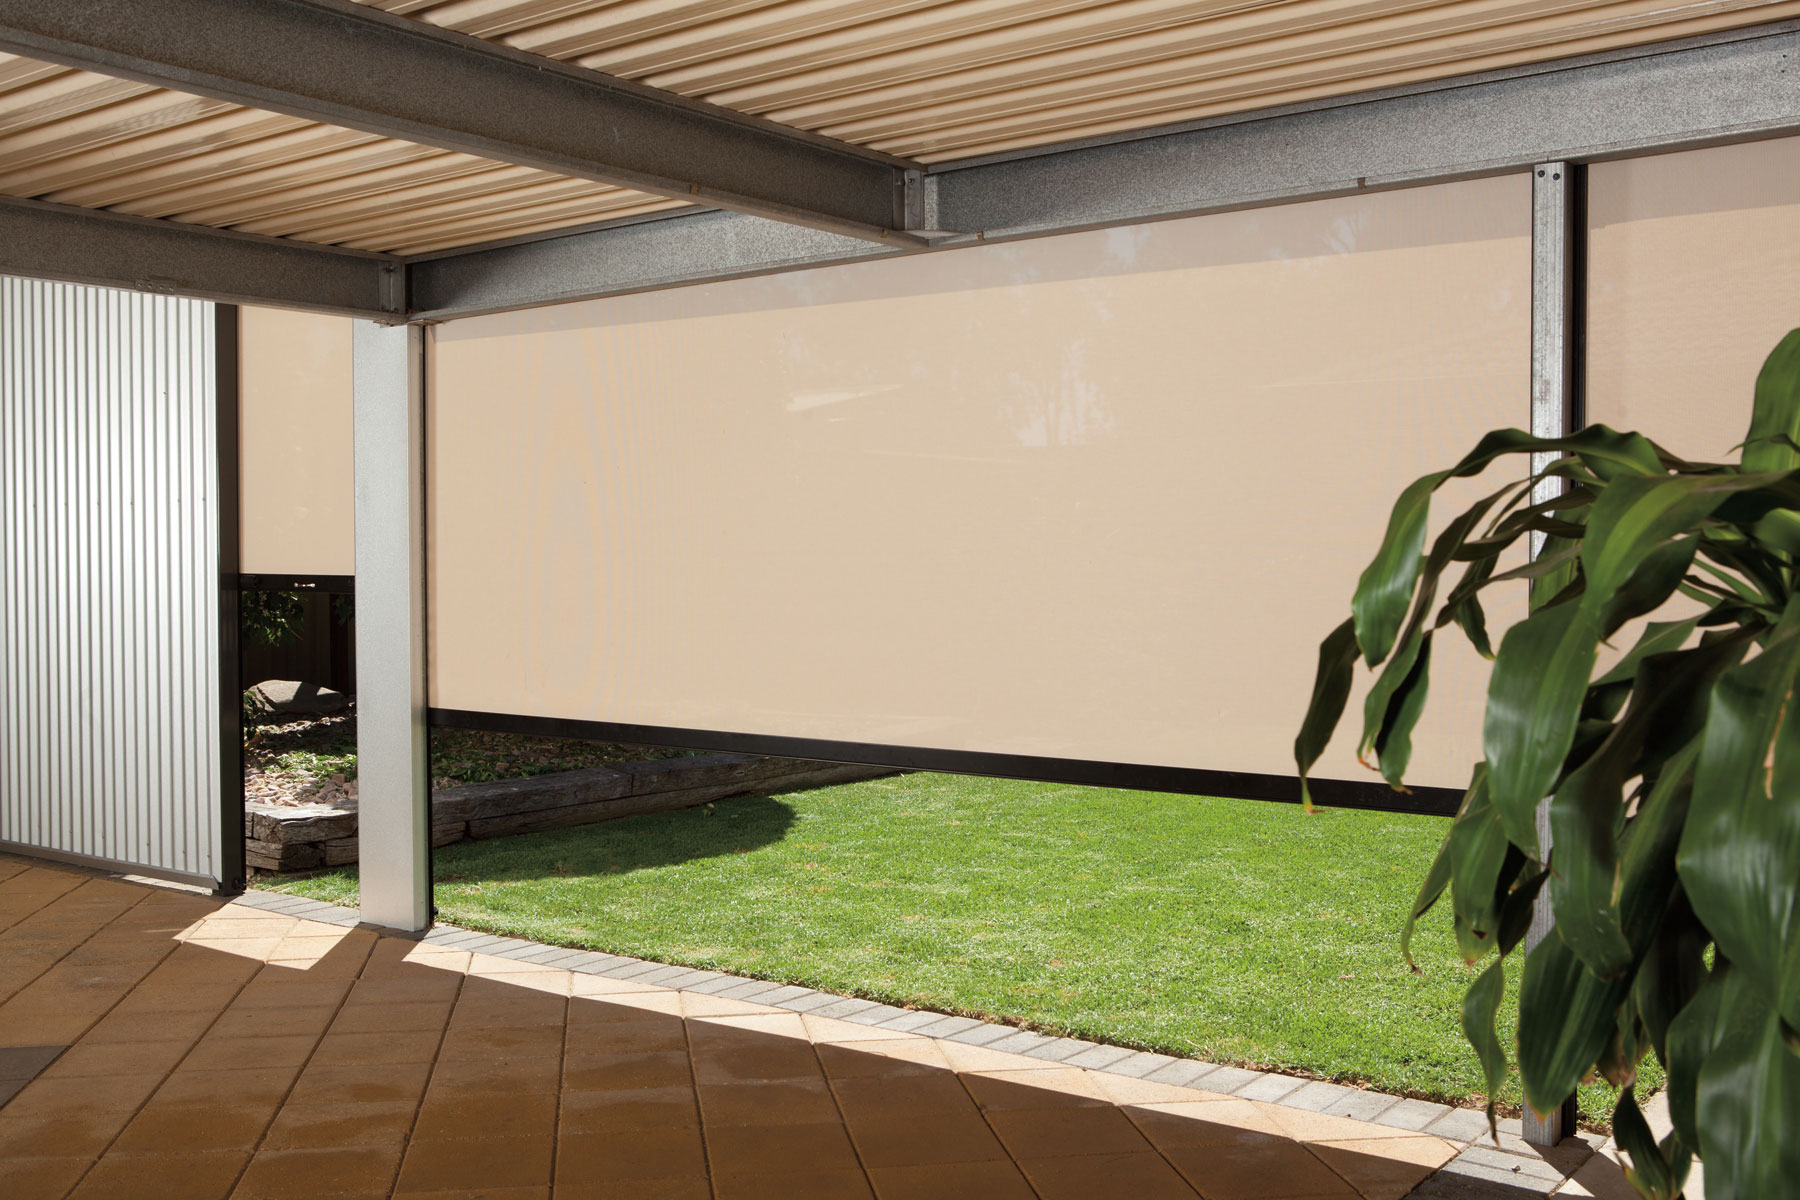 Ambient Outdoor Blinds Stratco Jpg 1800x1200 Covered Outdoor Patio Blinds